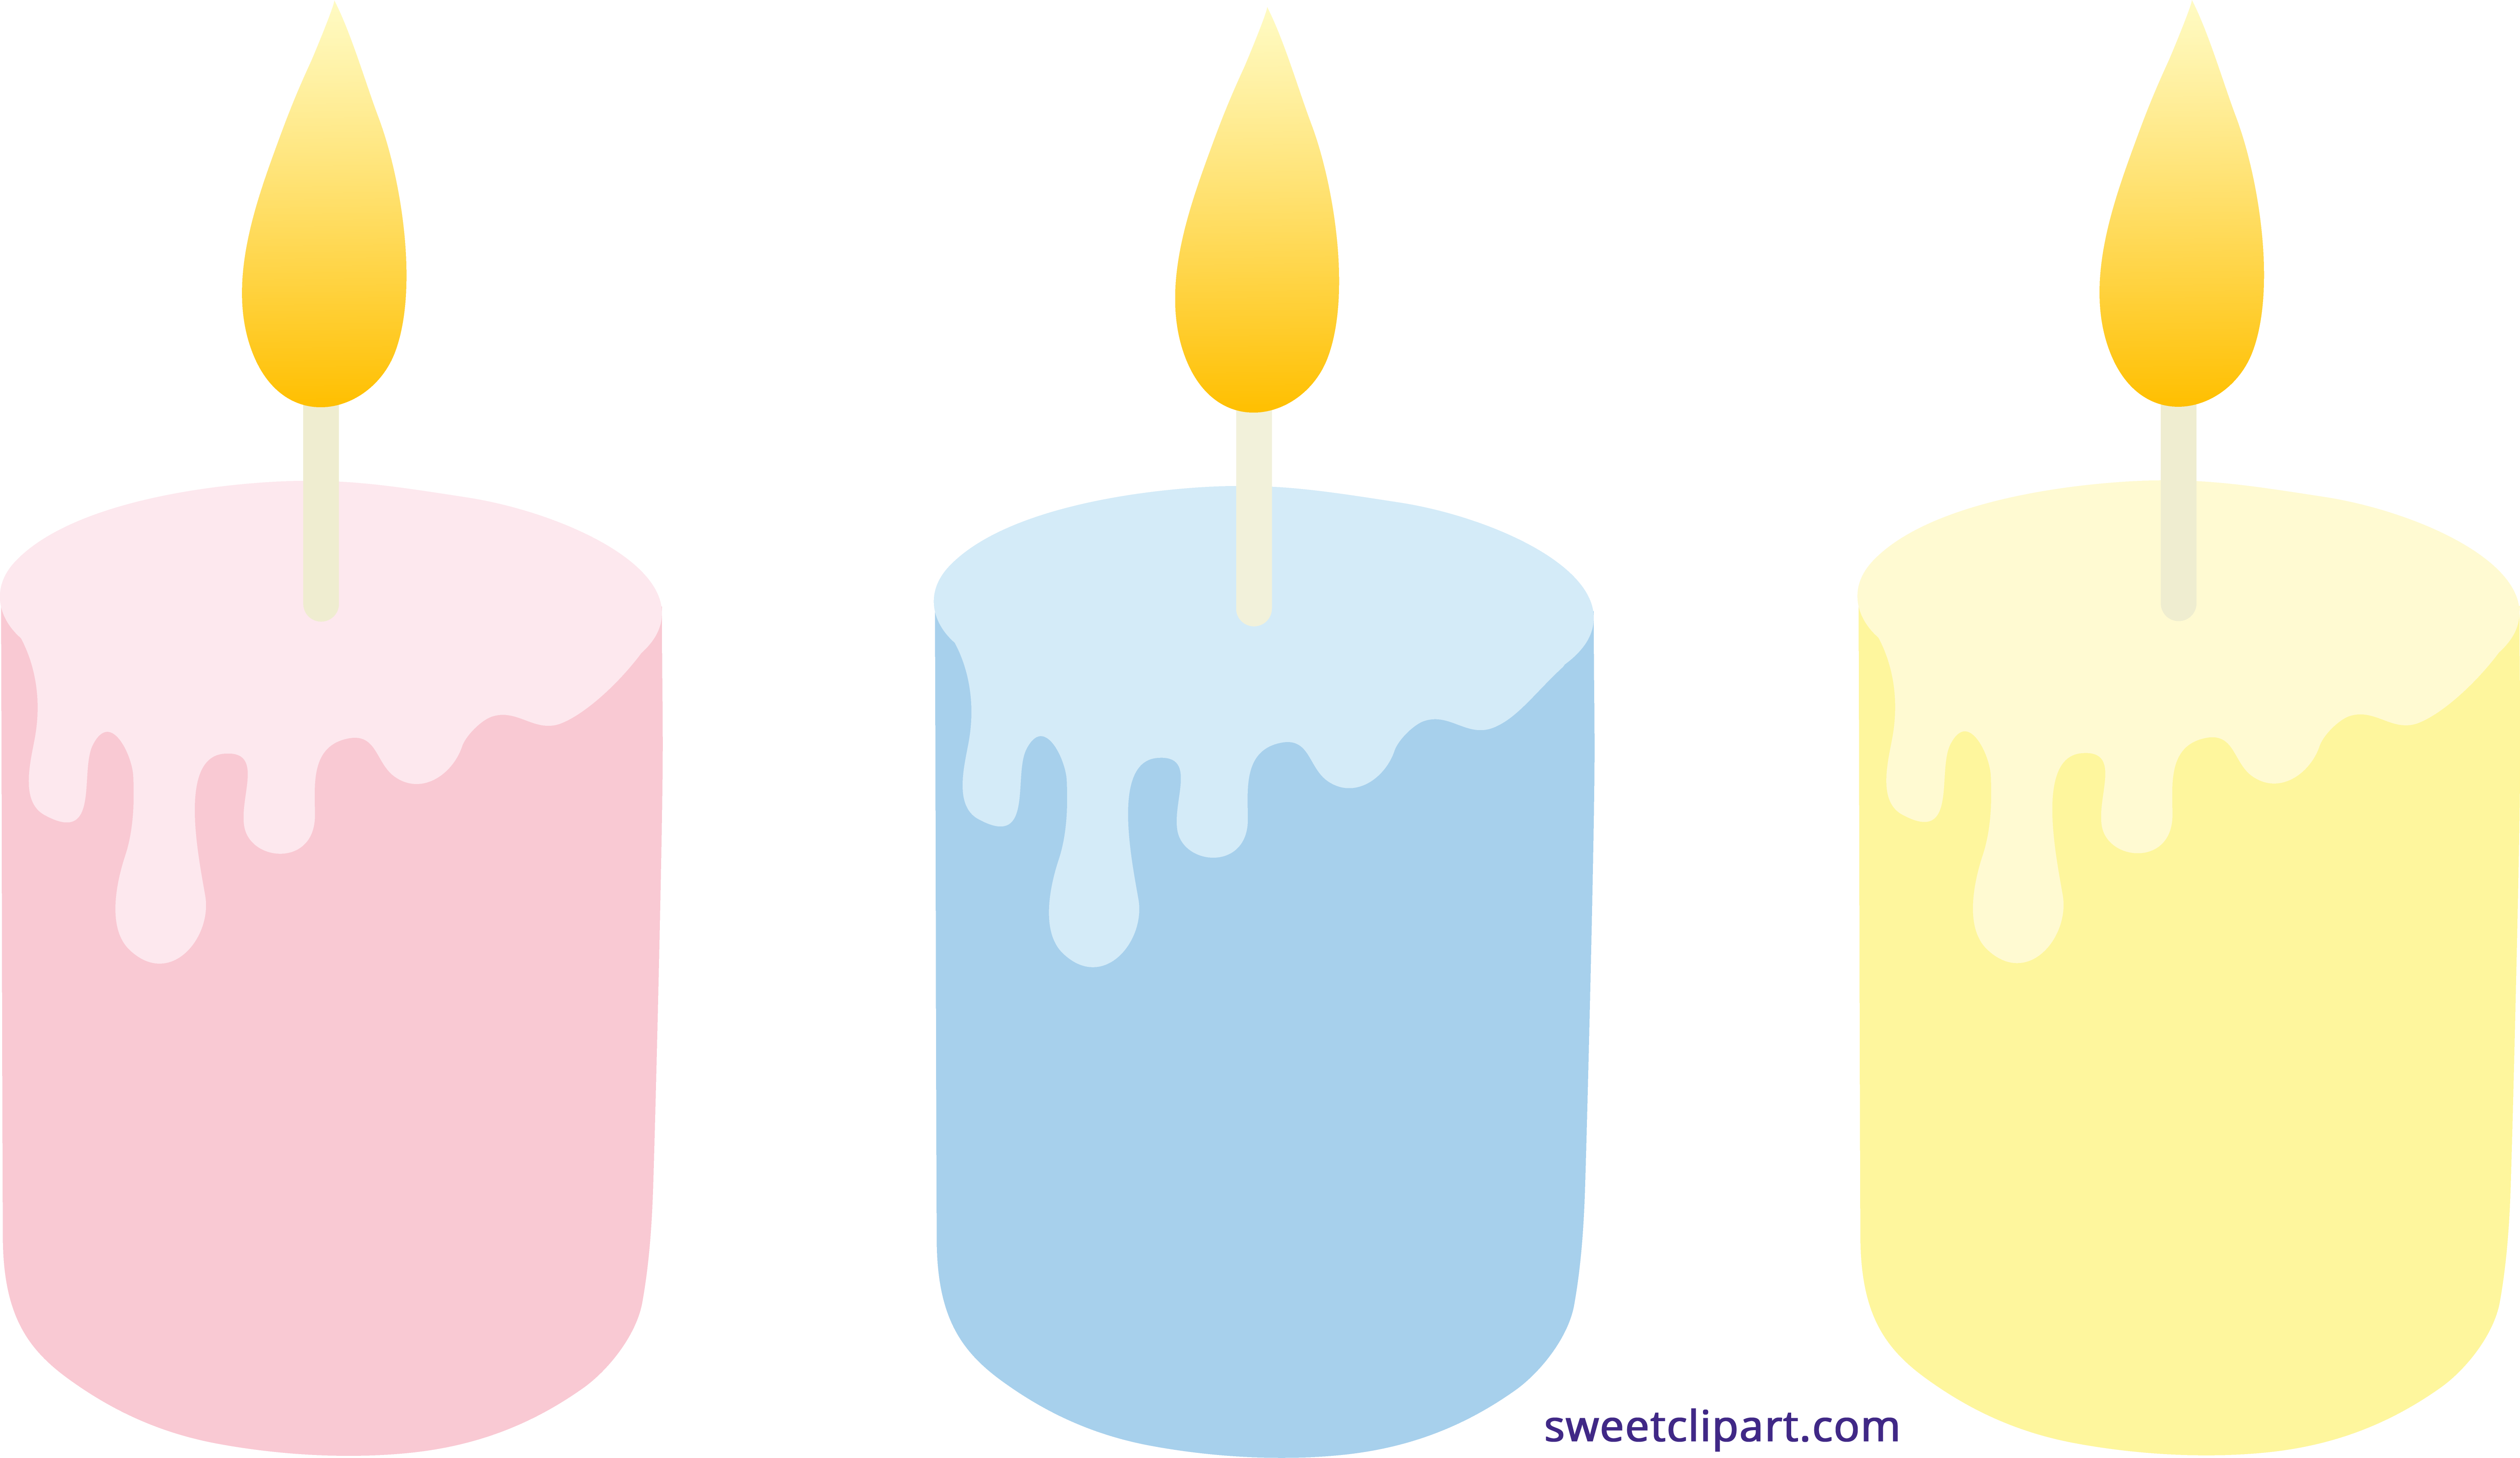 Post it clipart pastel. Colored candles set sweet